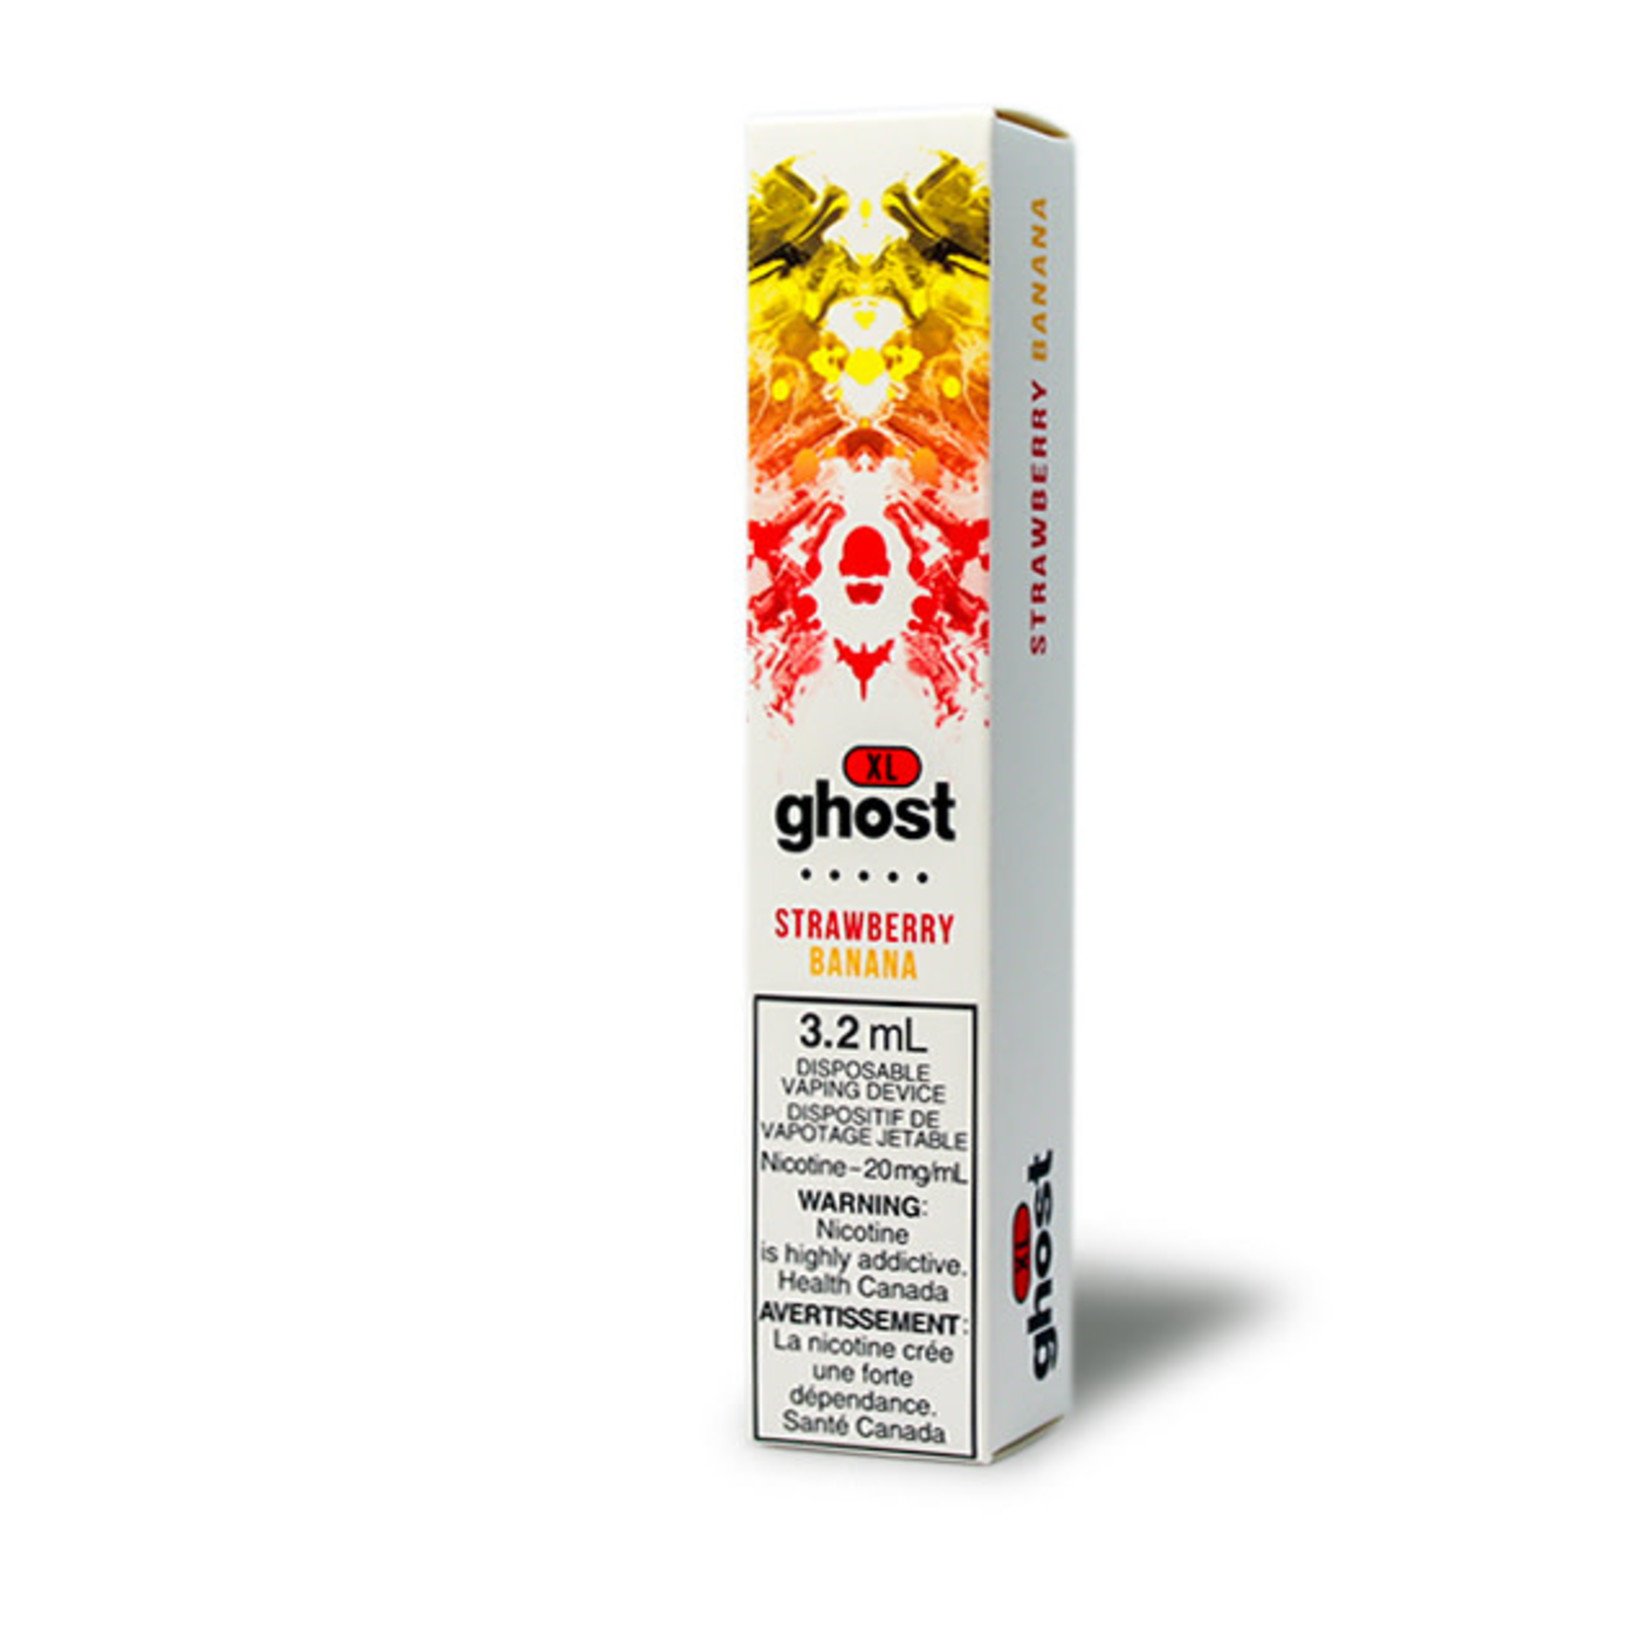 GHOST XL 800 PUFF Disposable Strawberry Banana